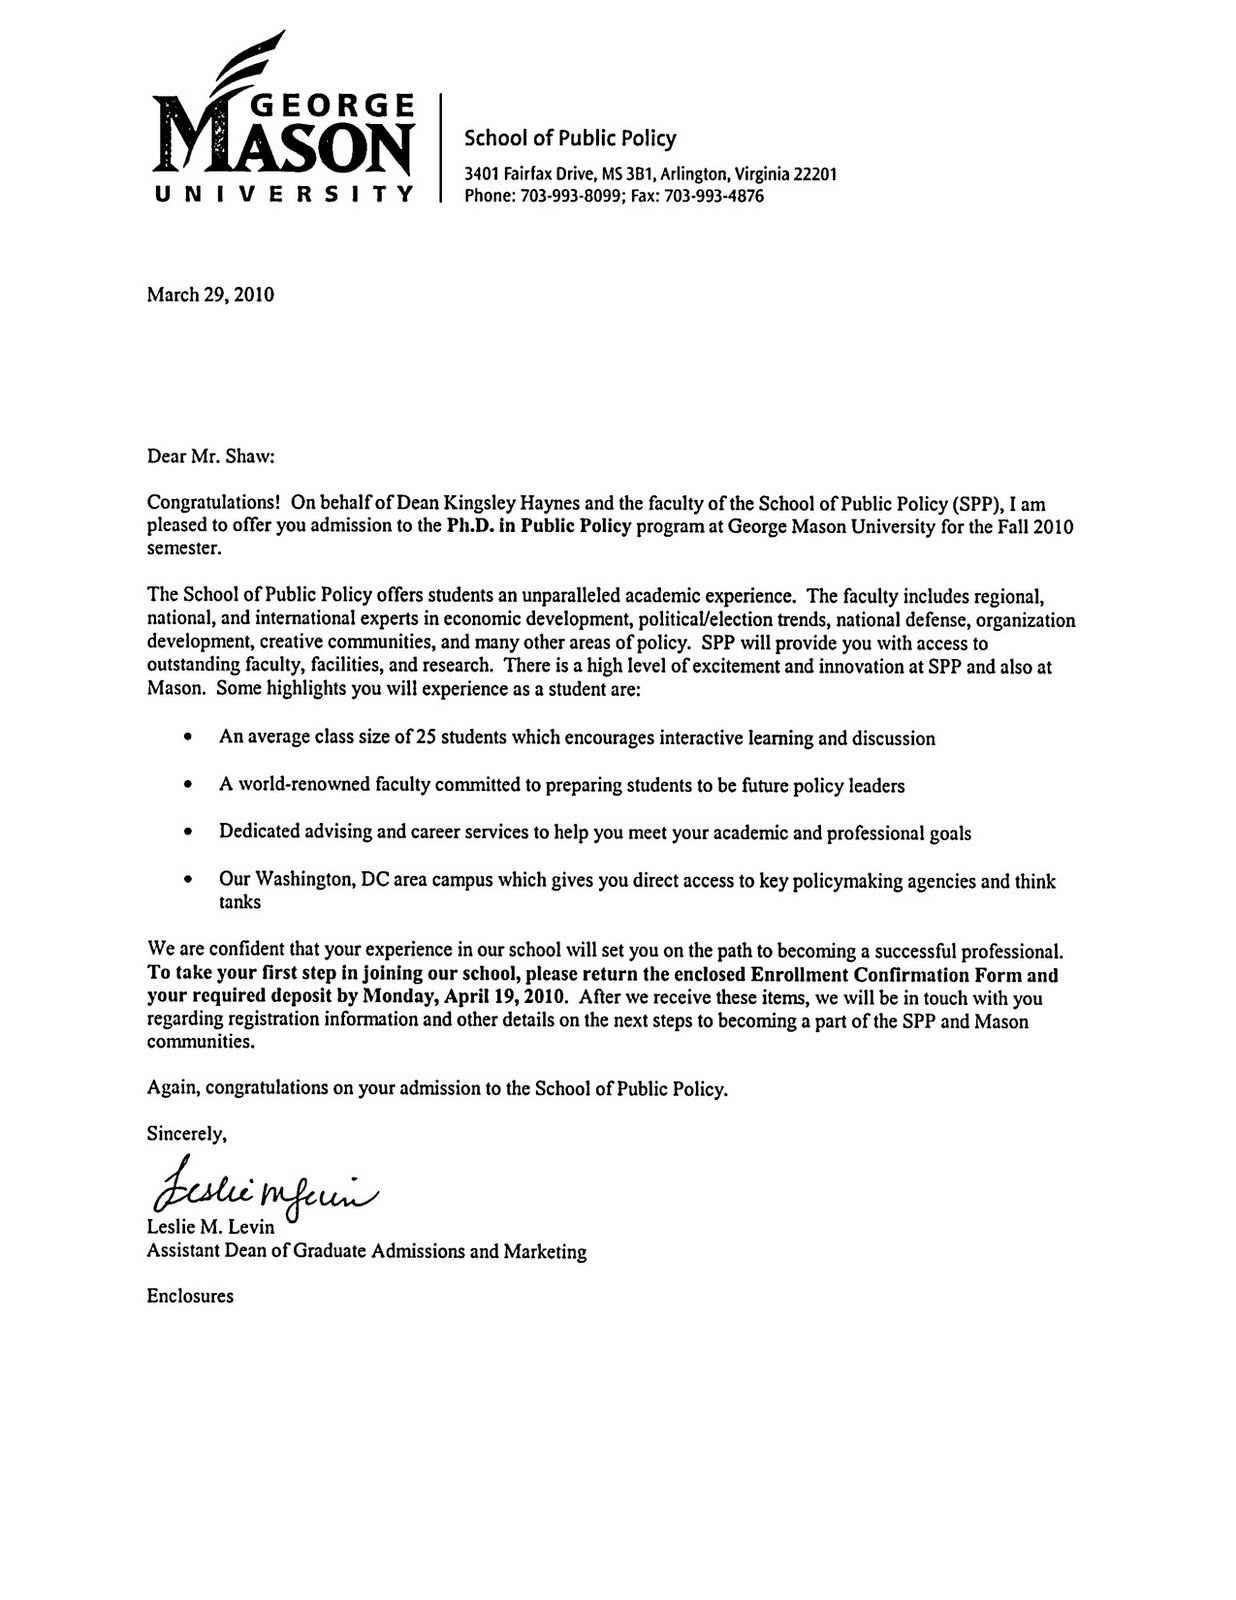 accepting letter doc tk accepting letter 23 04 2017